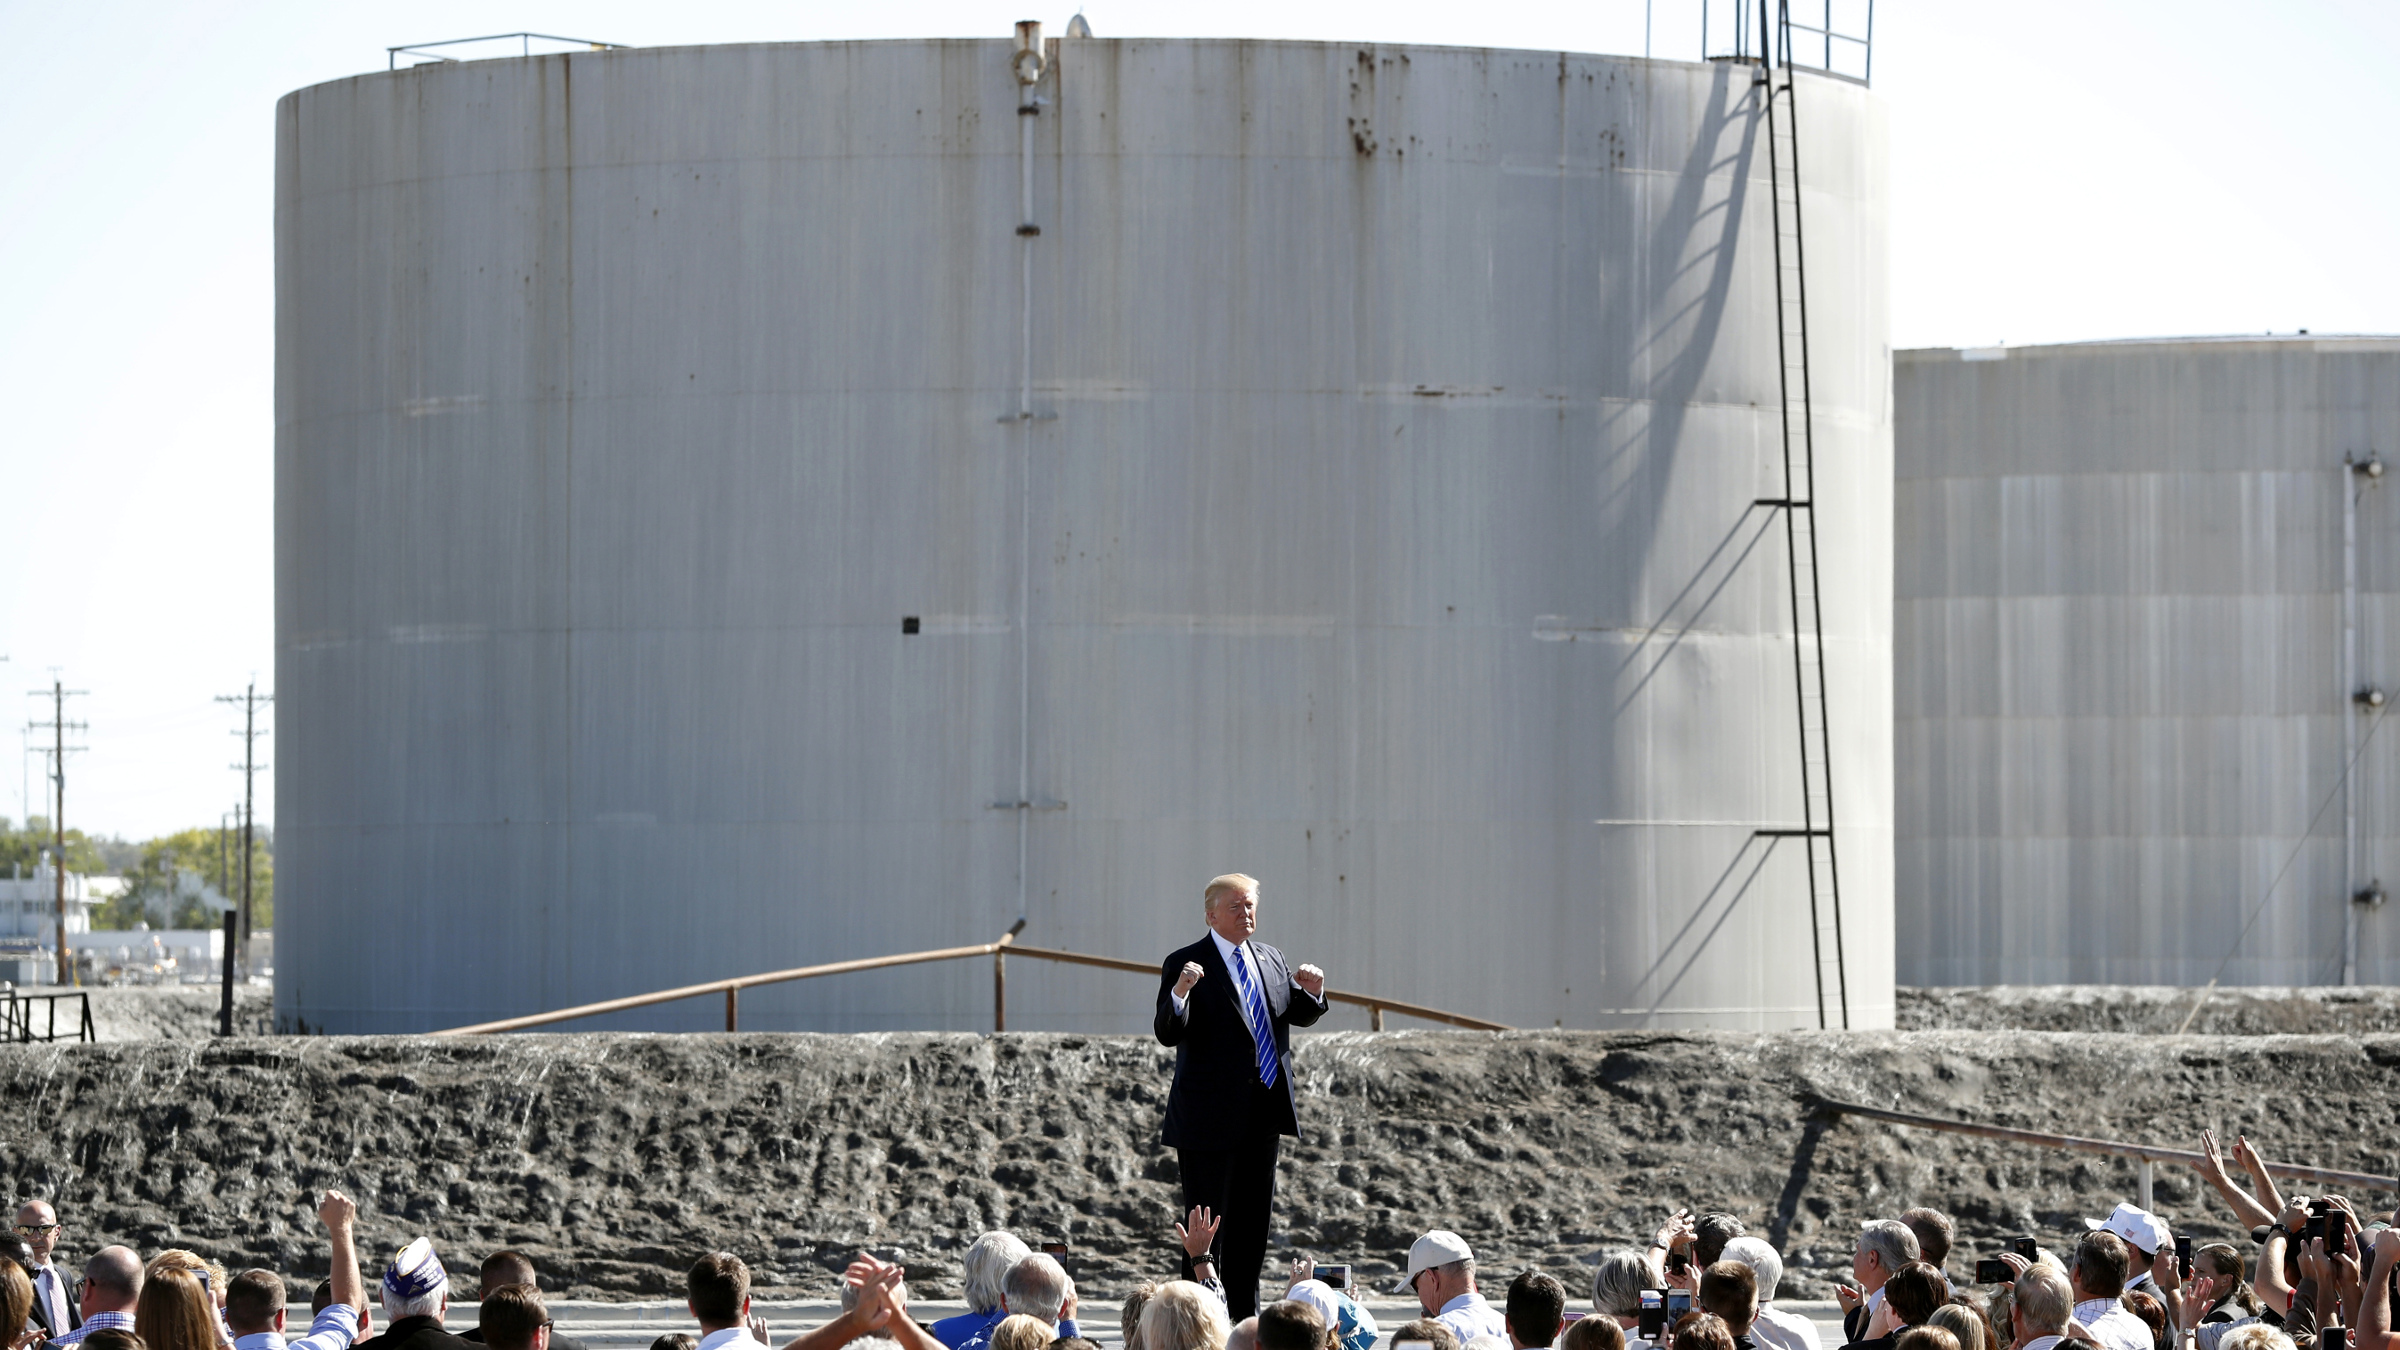 Donald Trump speaks at an oil refinery in September 2017.